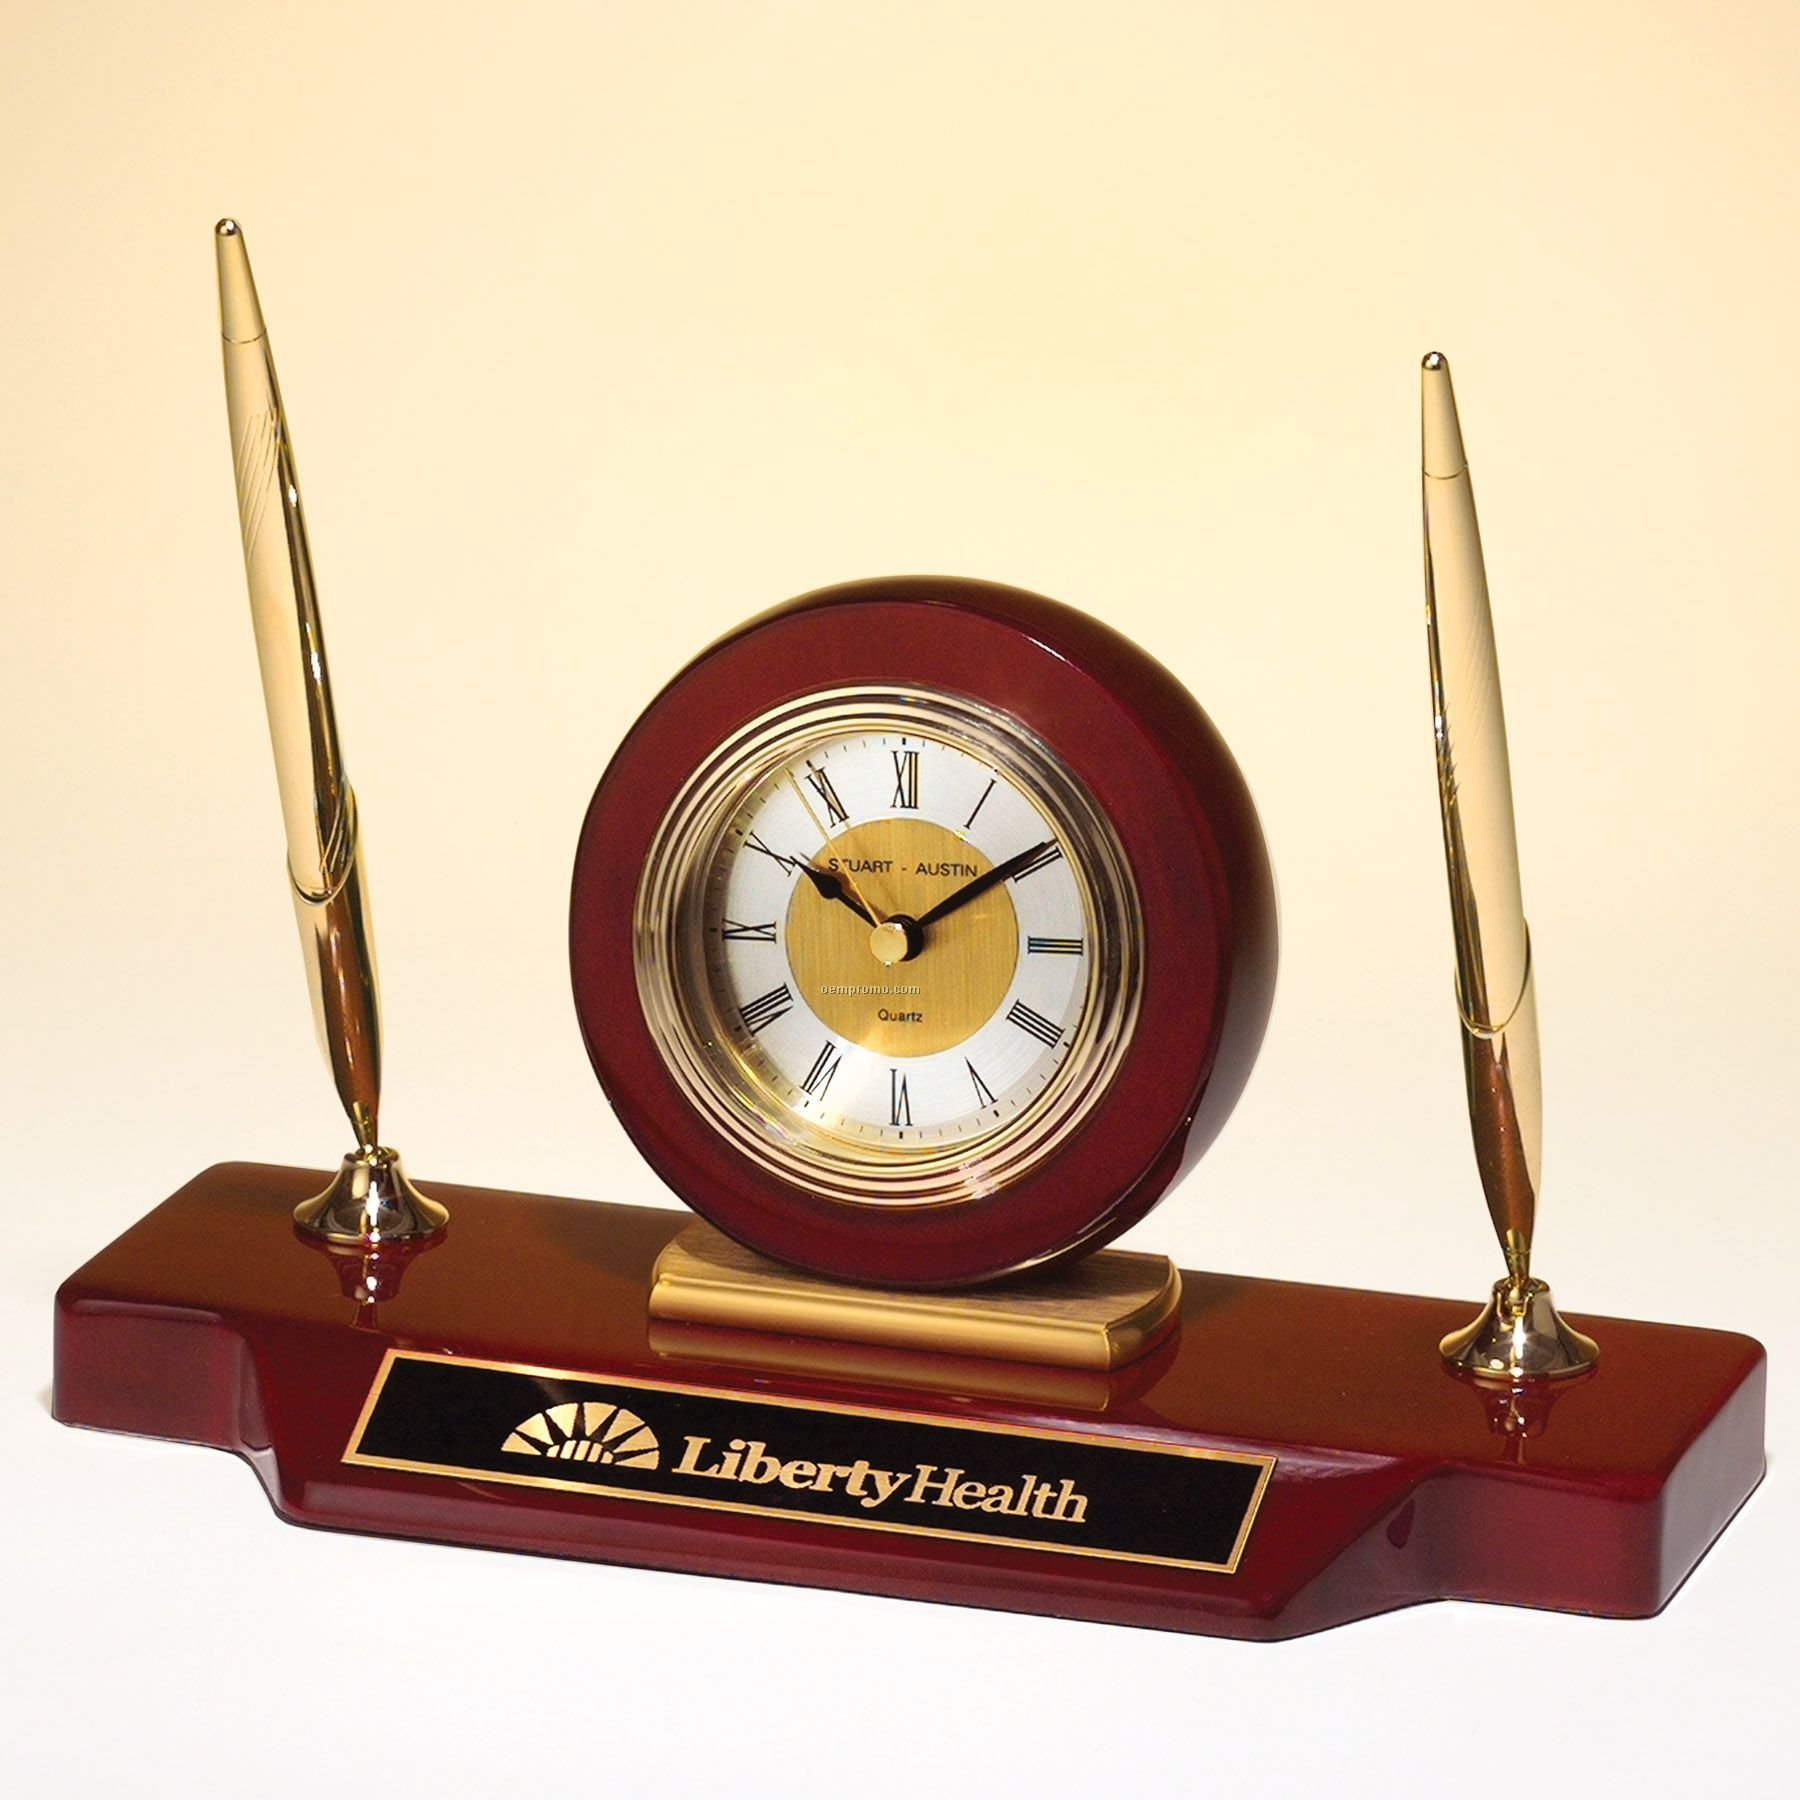 Rosewood Piano Finish Clock With Two Pens